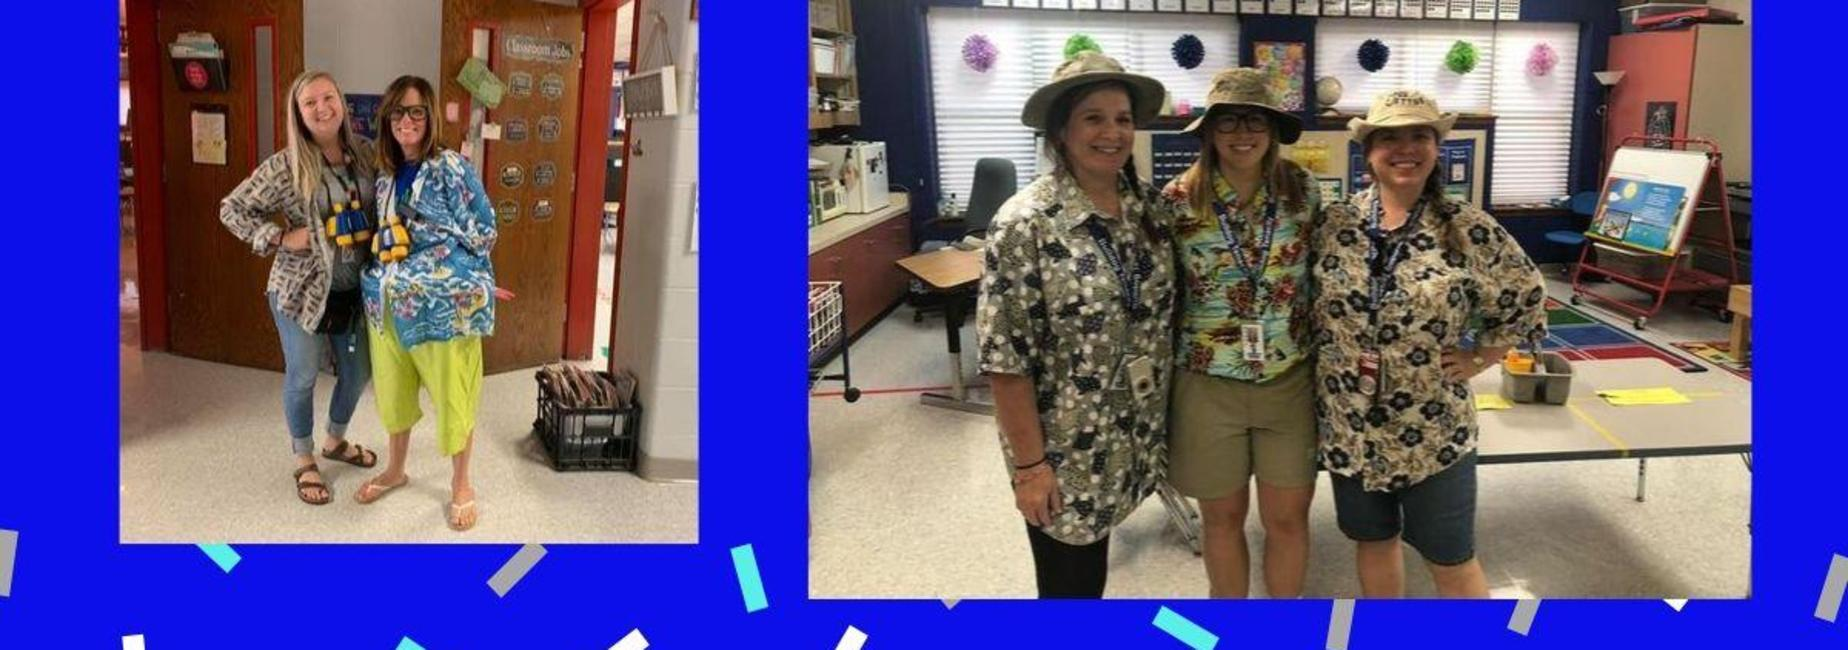 Twin Day/Tourist